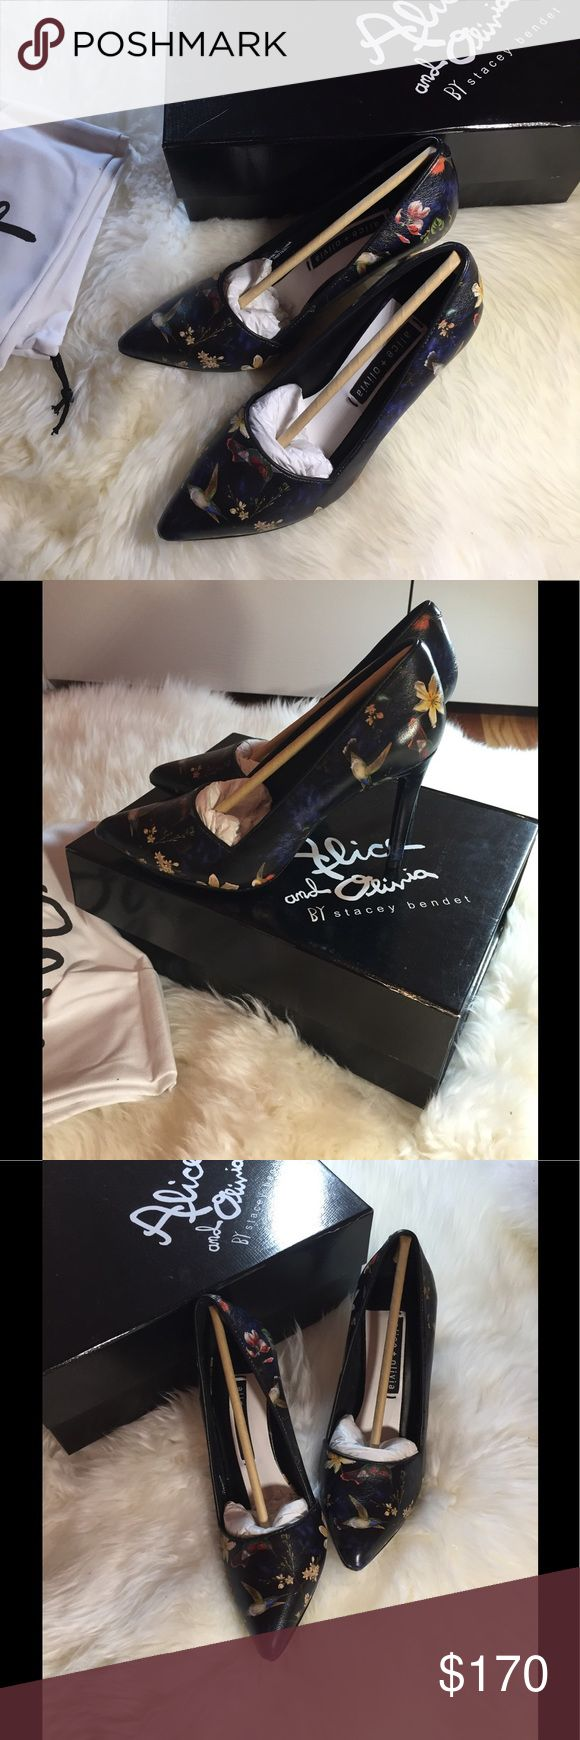 New Authentic Alice-+Olivia floral pumps New with original package.Come with box and dust bag.Women size 37.beautiful floral print on black lambskin.Price is firm. Alice + Olivia Shoes Heels